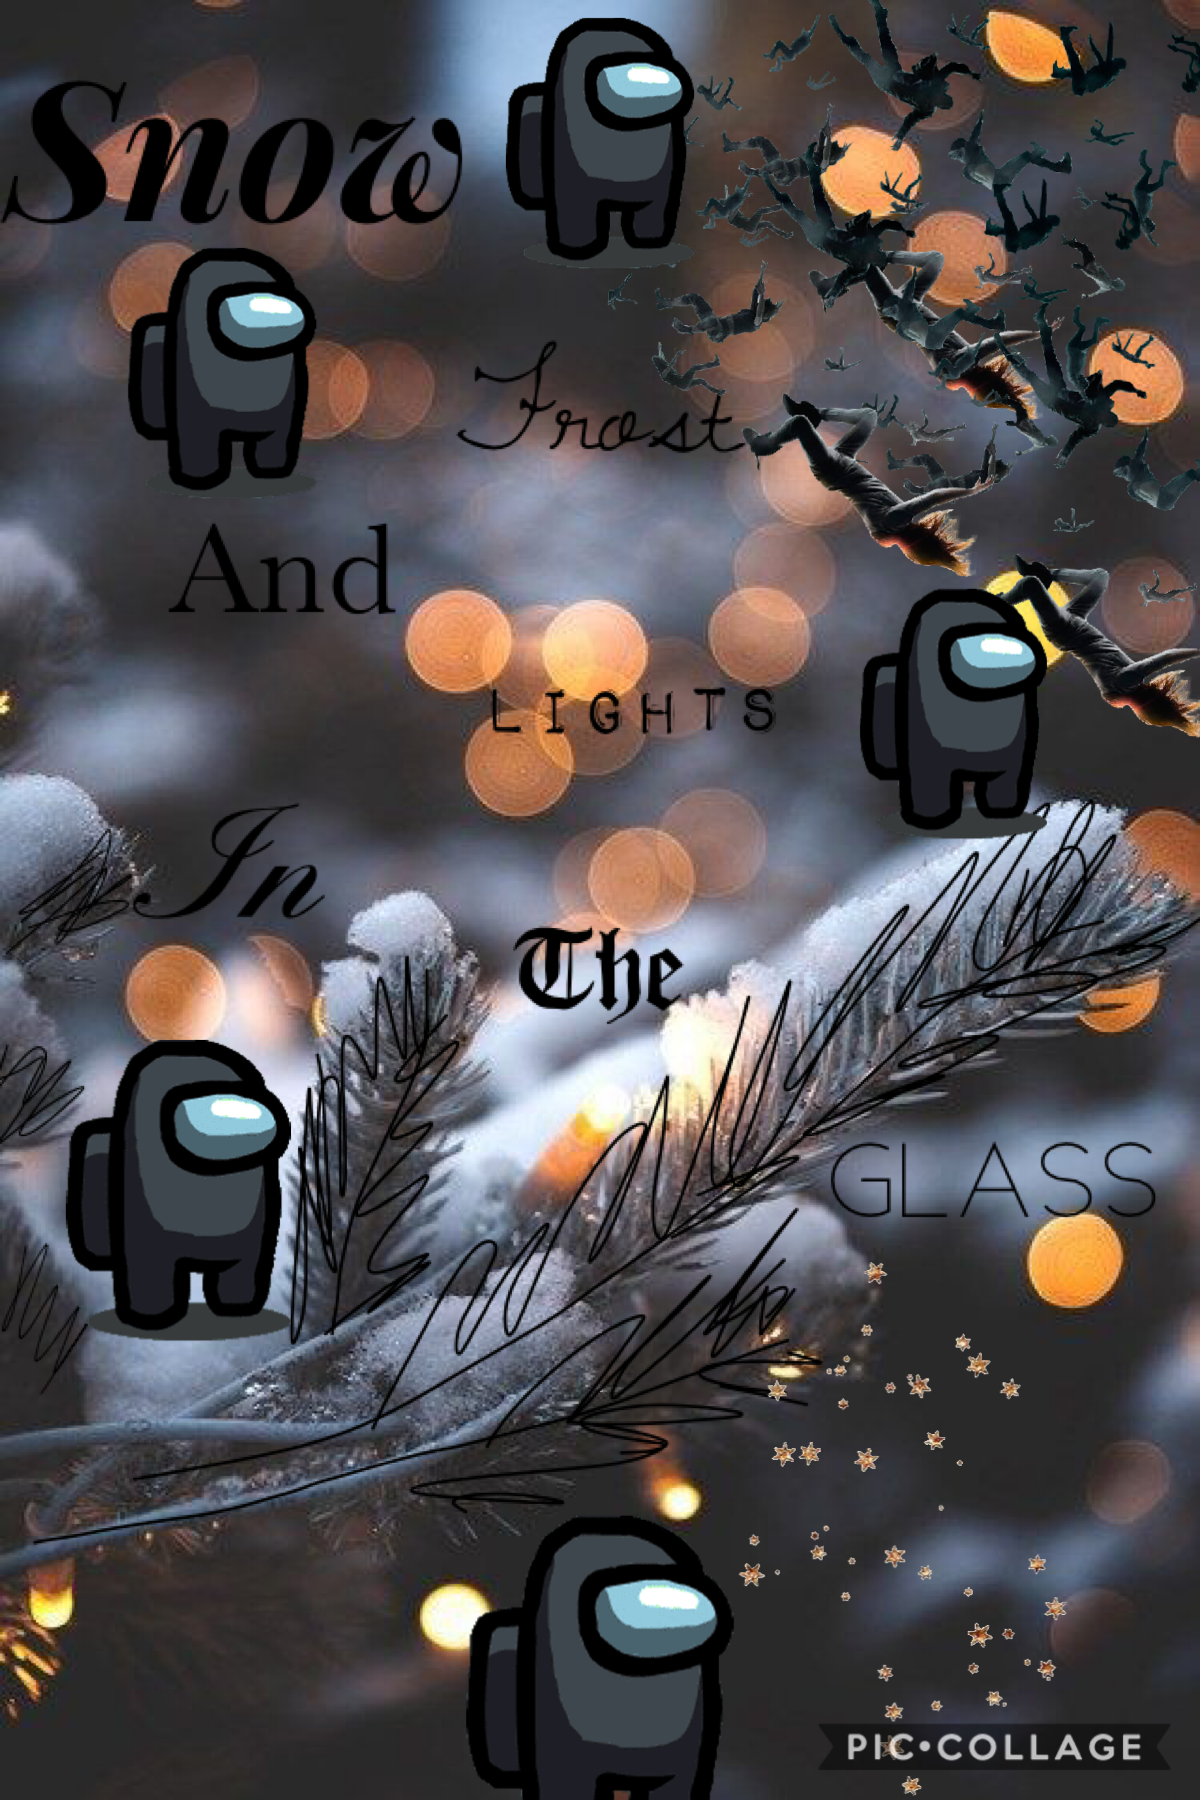 """Tap Hey all!!! This is my first collage on my new iphone 7!(so ill prob get phonto soon!!!) I decided to make a """"Christmas"""" collage with an Among us twist because im addicted to that game haha QOTD:do you like among us? ADOT:Adicted to it  Please rate 1-1"""